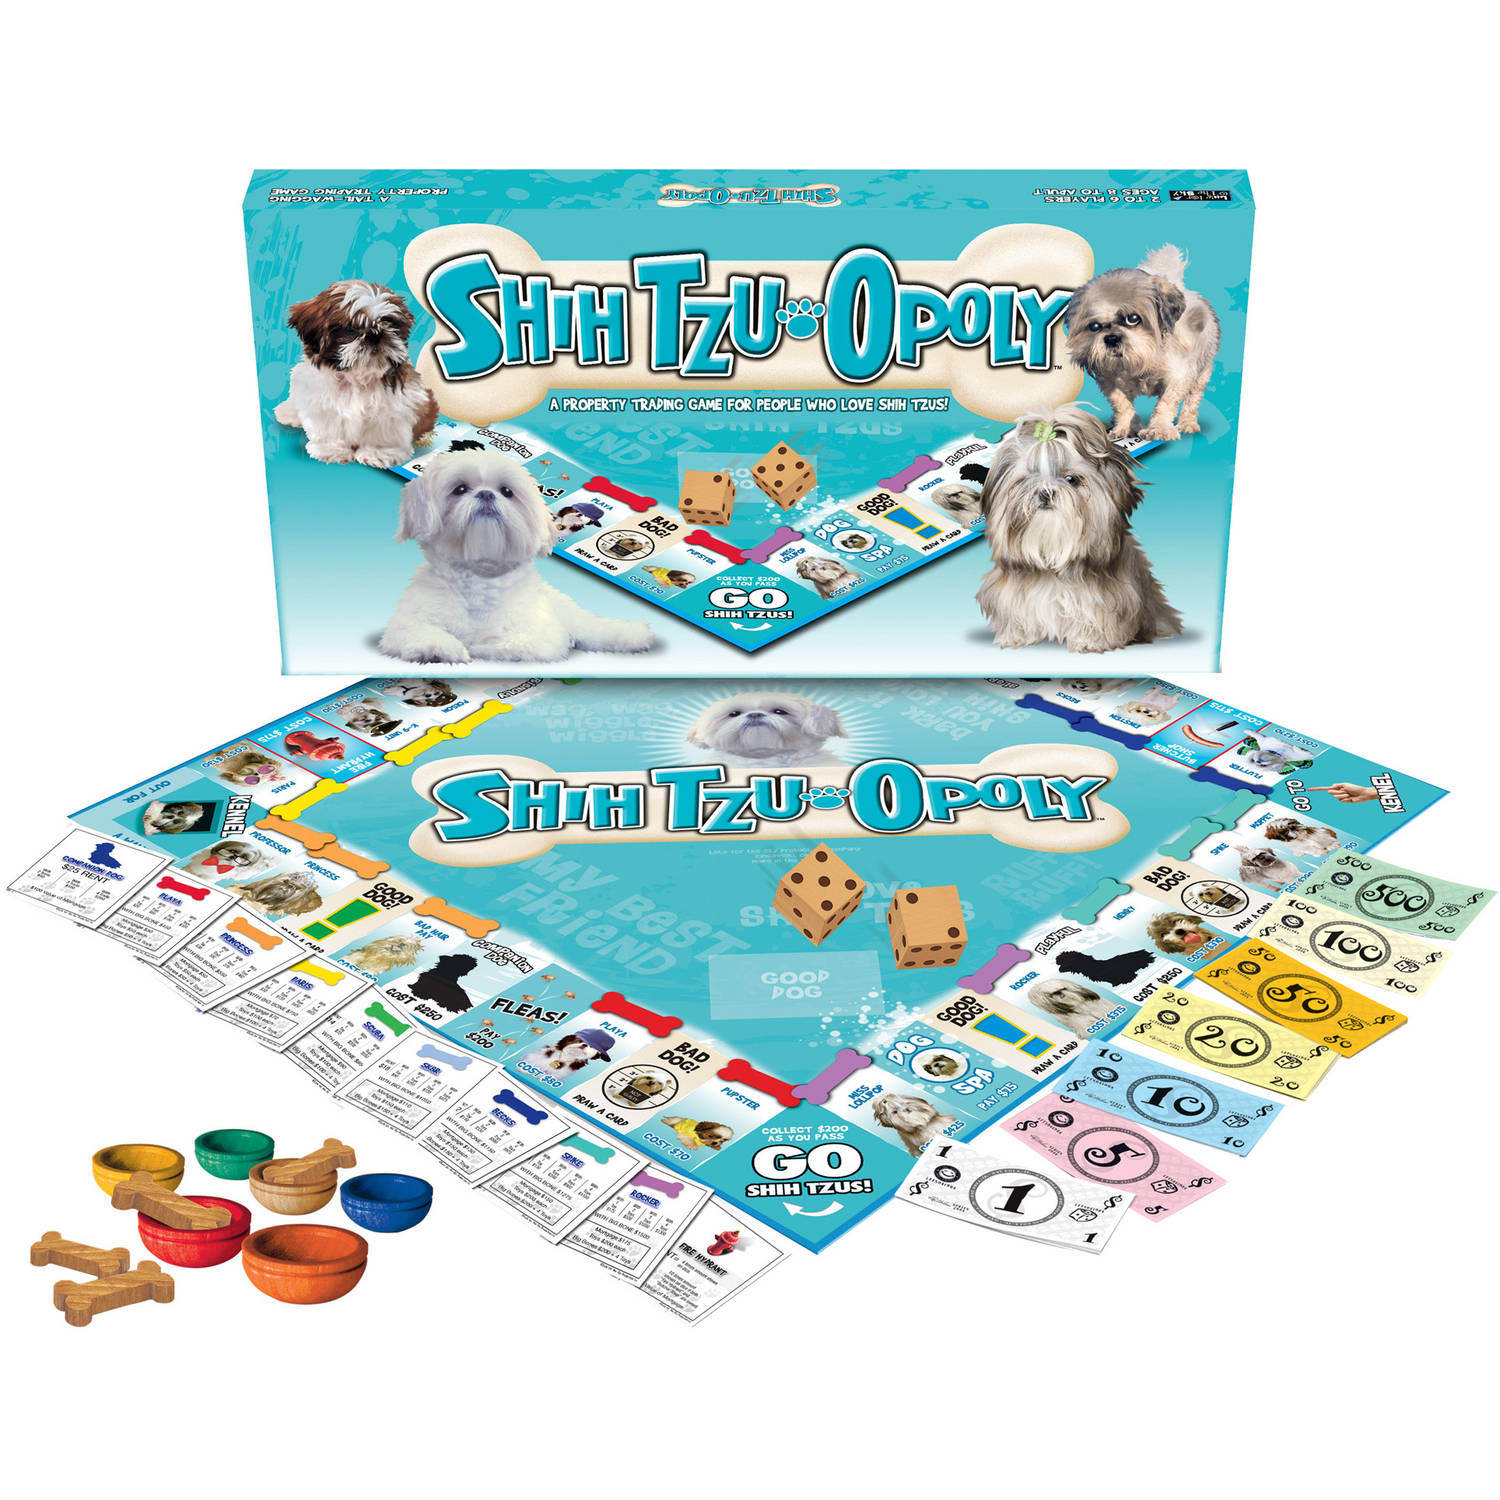 Late for the Sky Shih Tzu-opoly Game